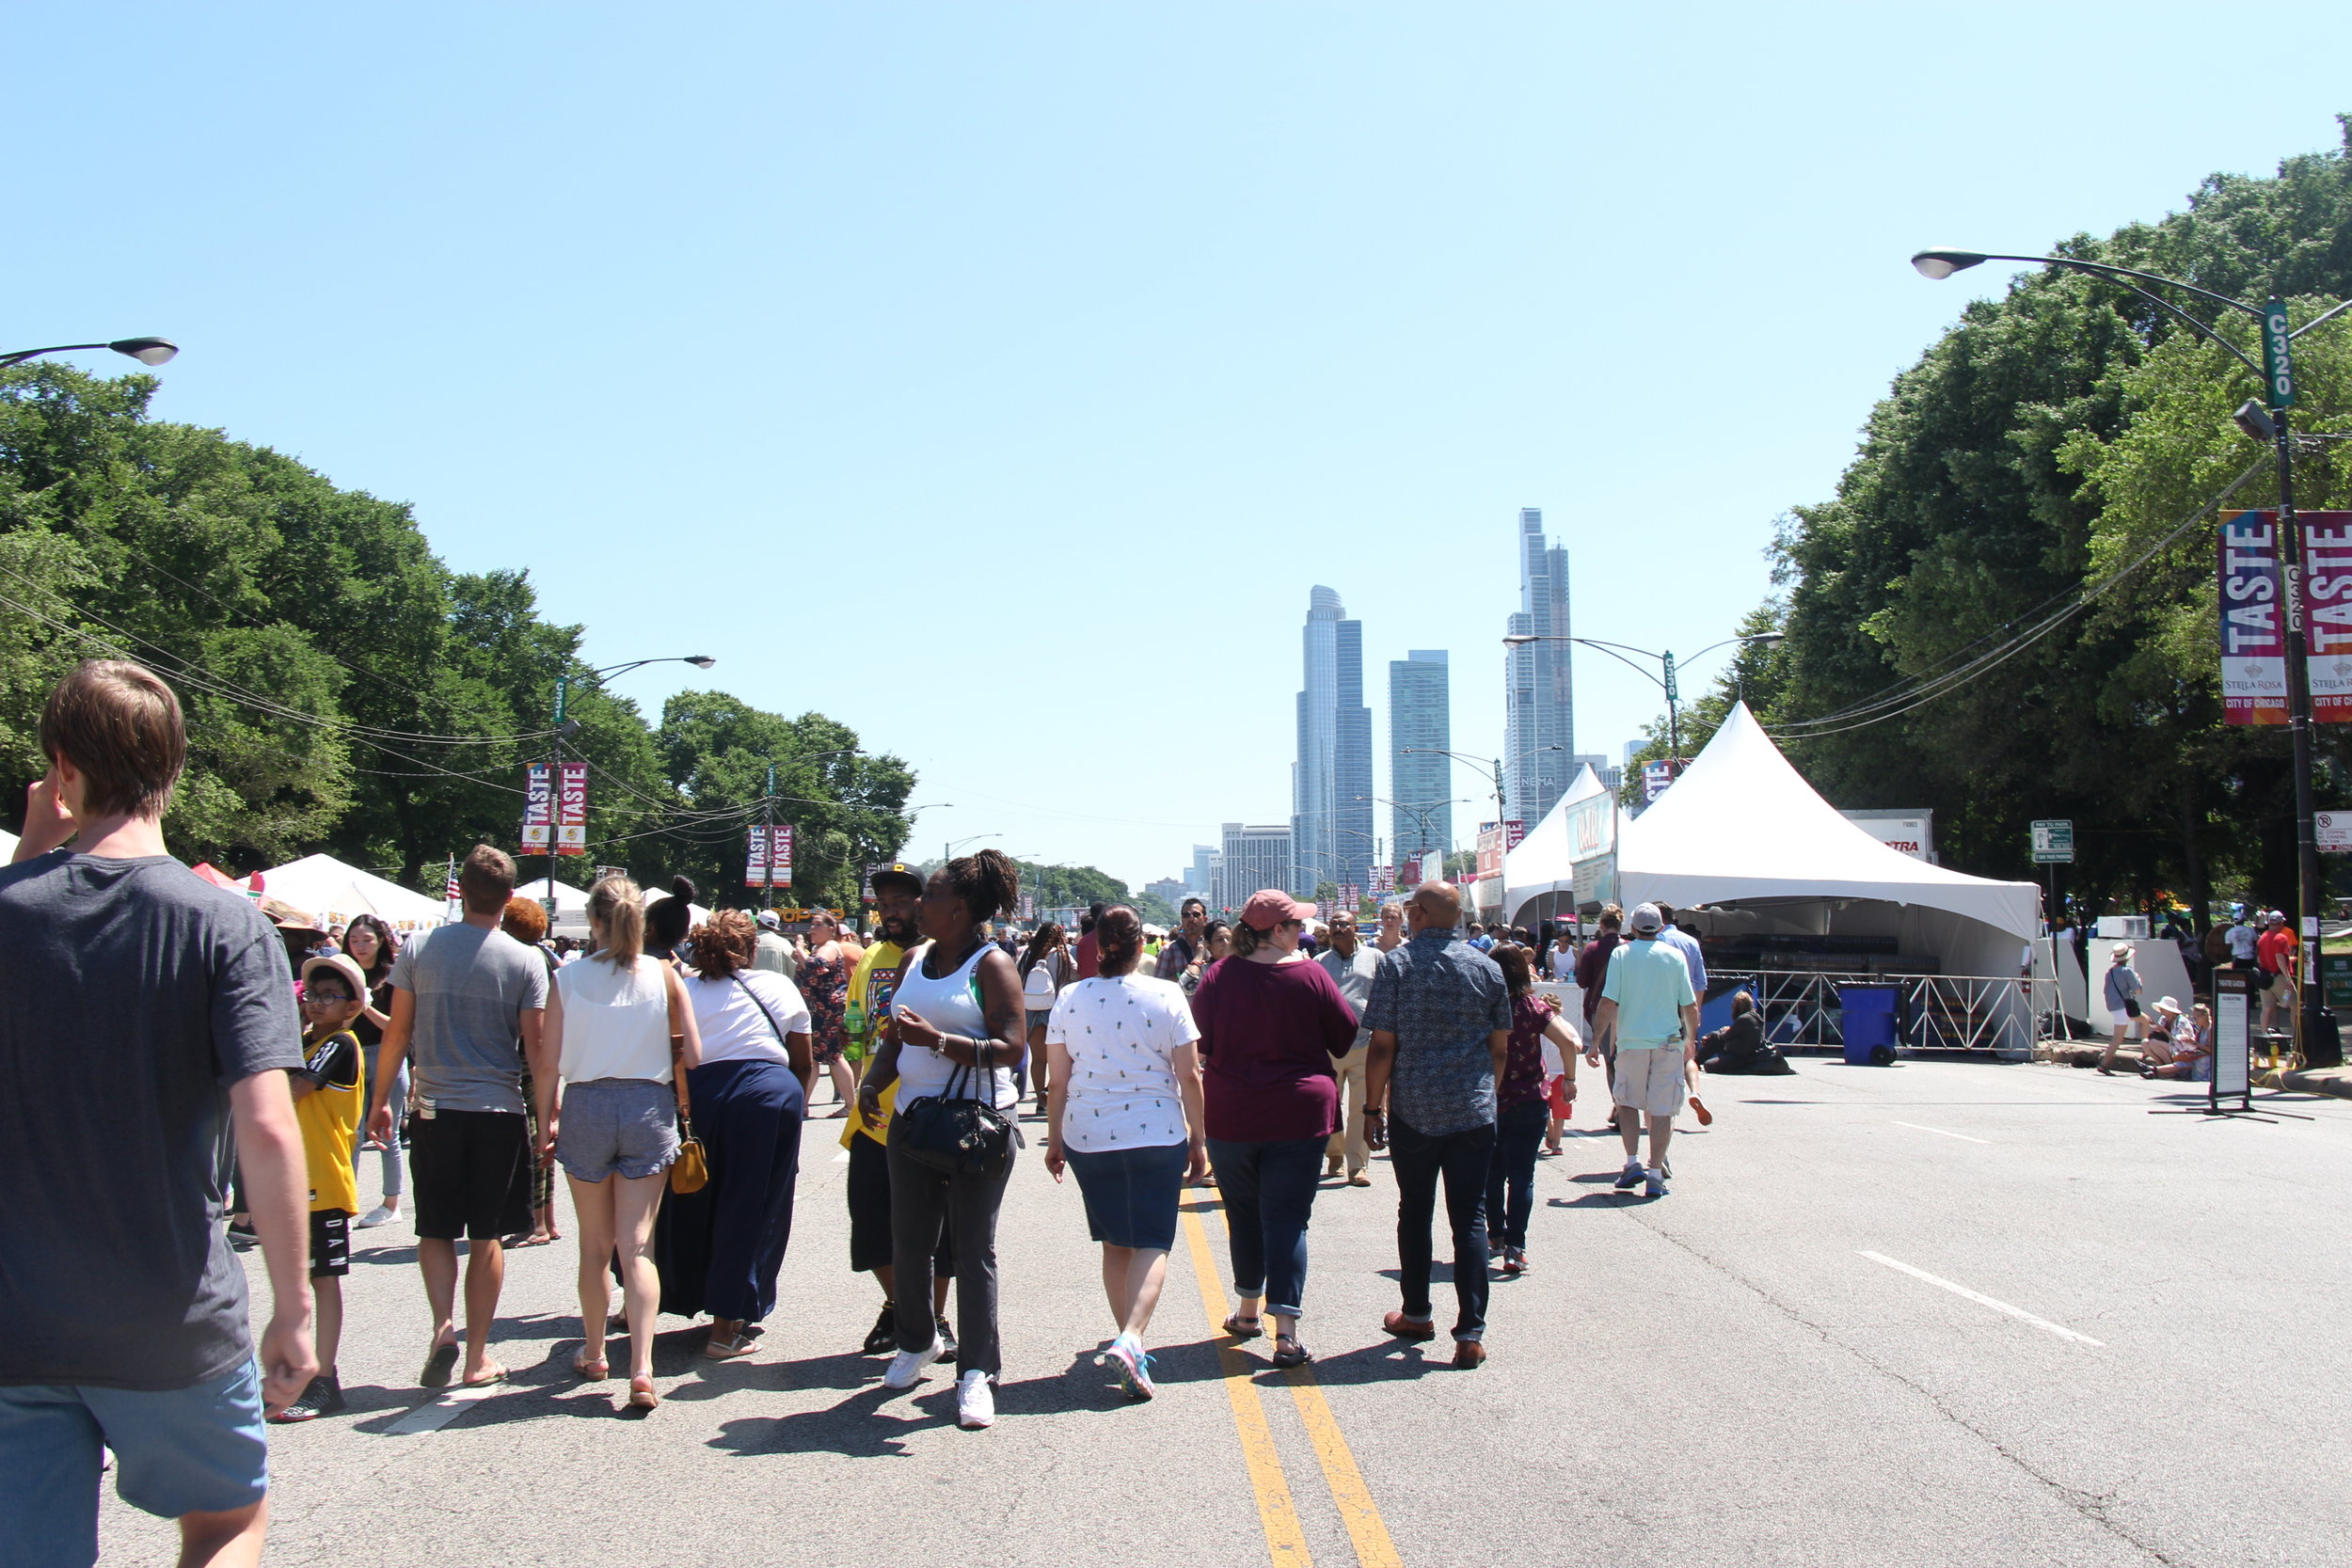 Family and friends walking through one of the largest food festivals in Chicago. Photo by Millie Johnson